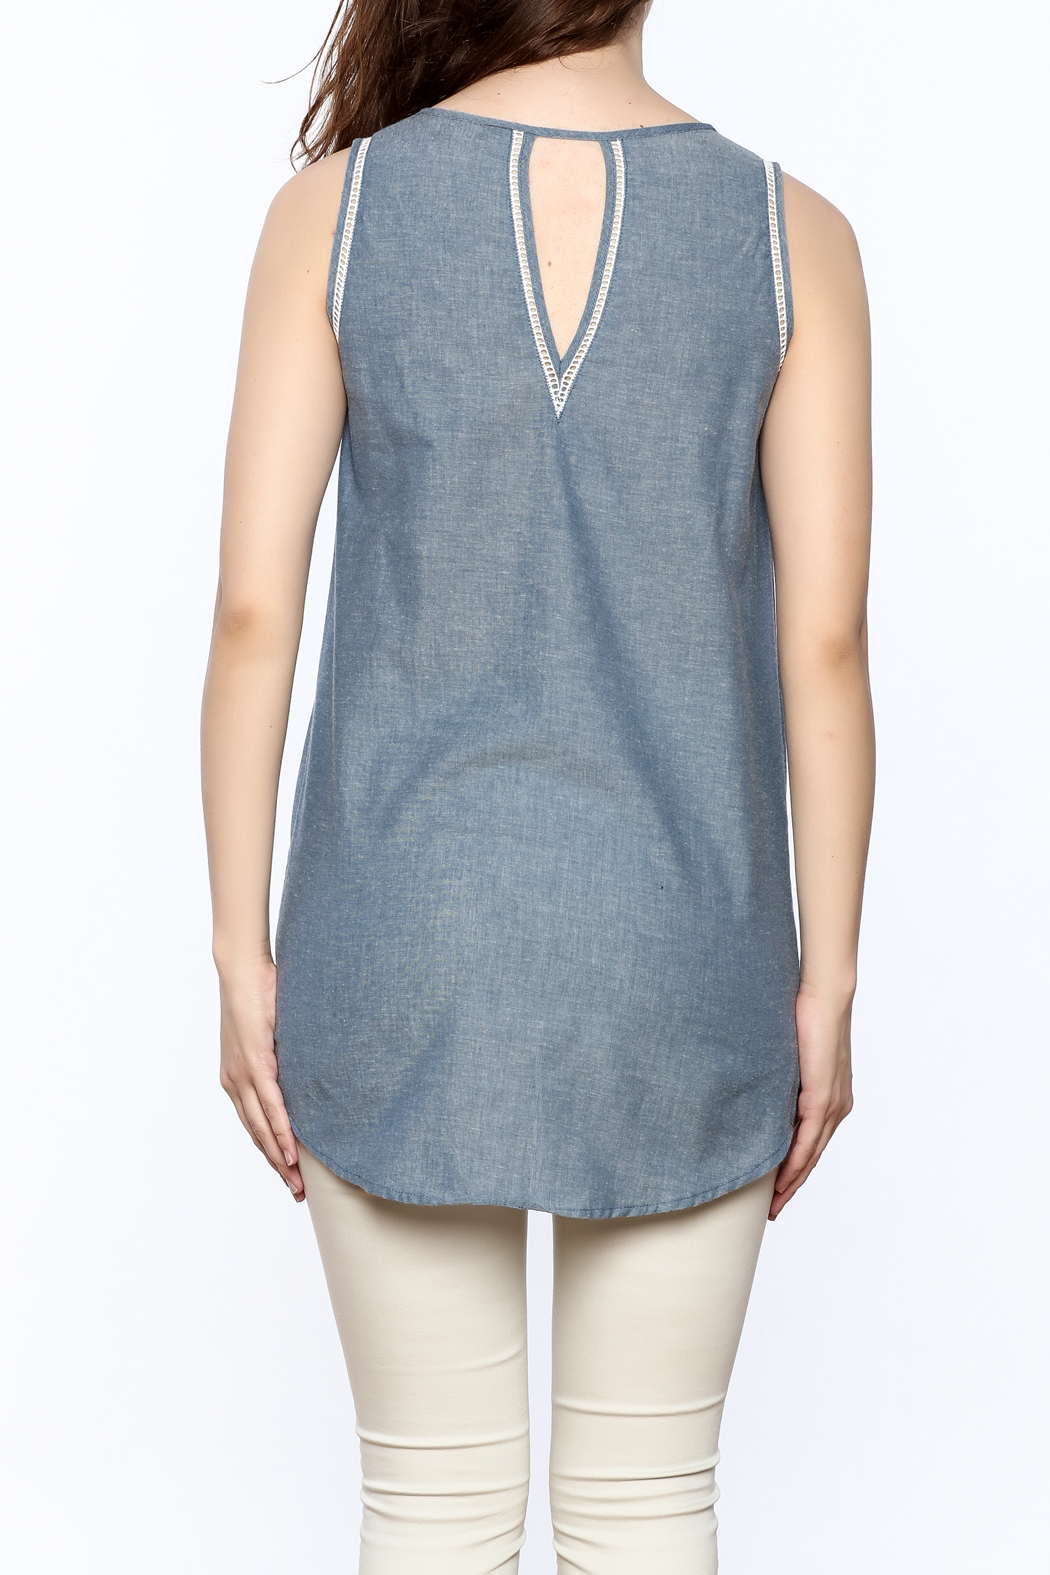 The Royal Standard Chambray Sleeveless Tunic Top - Back Cropped Image